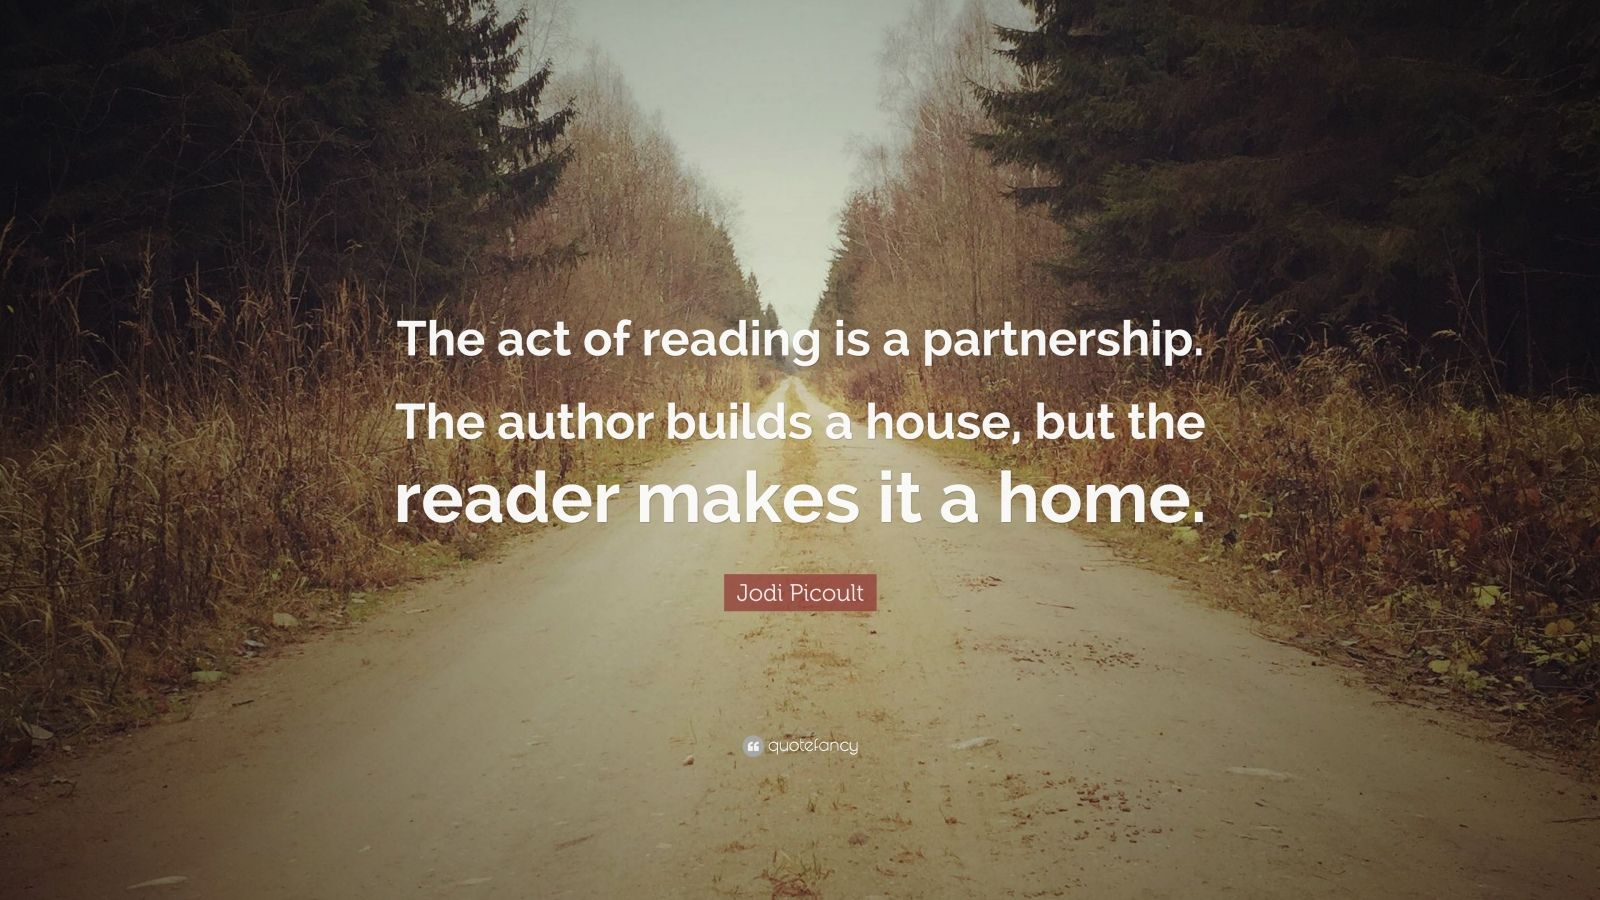 """Jodi Picoult Quote: """"The act of reading is a partnership. The author builds a house, but the reader makes it a home."""""""